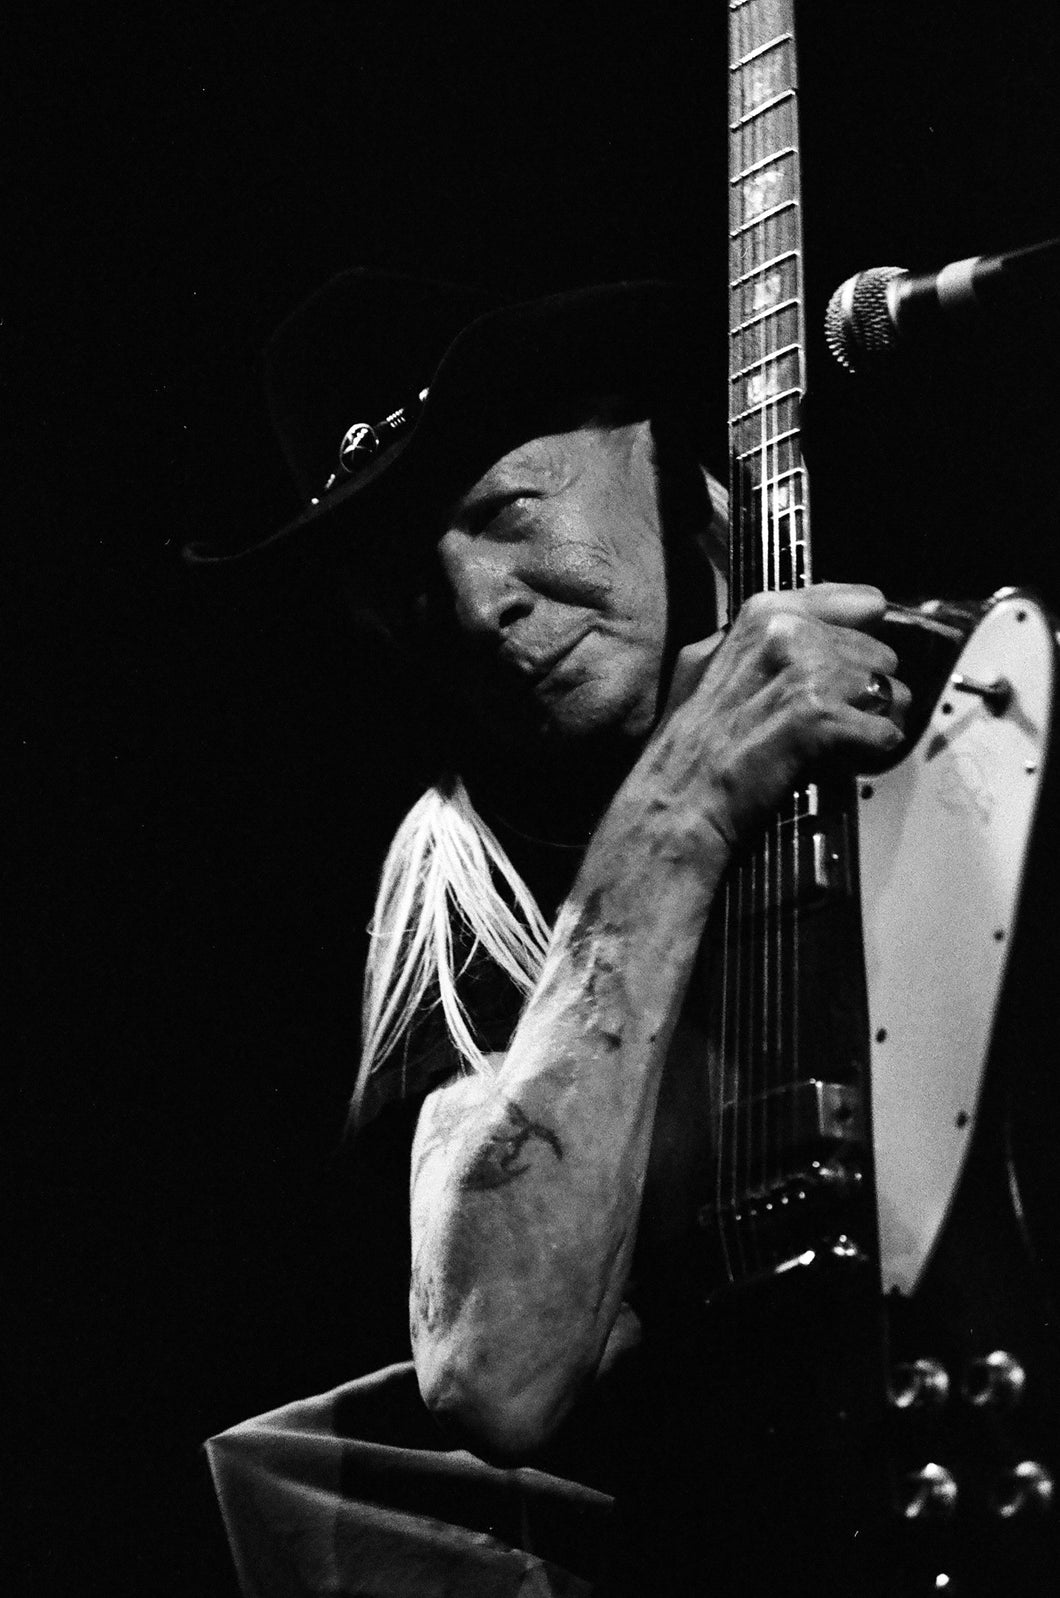 Johnny Winter 8x10 loose print